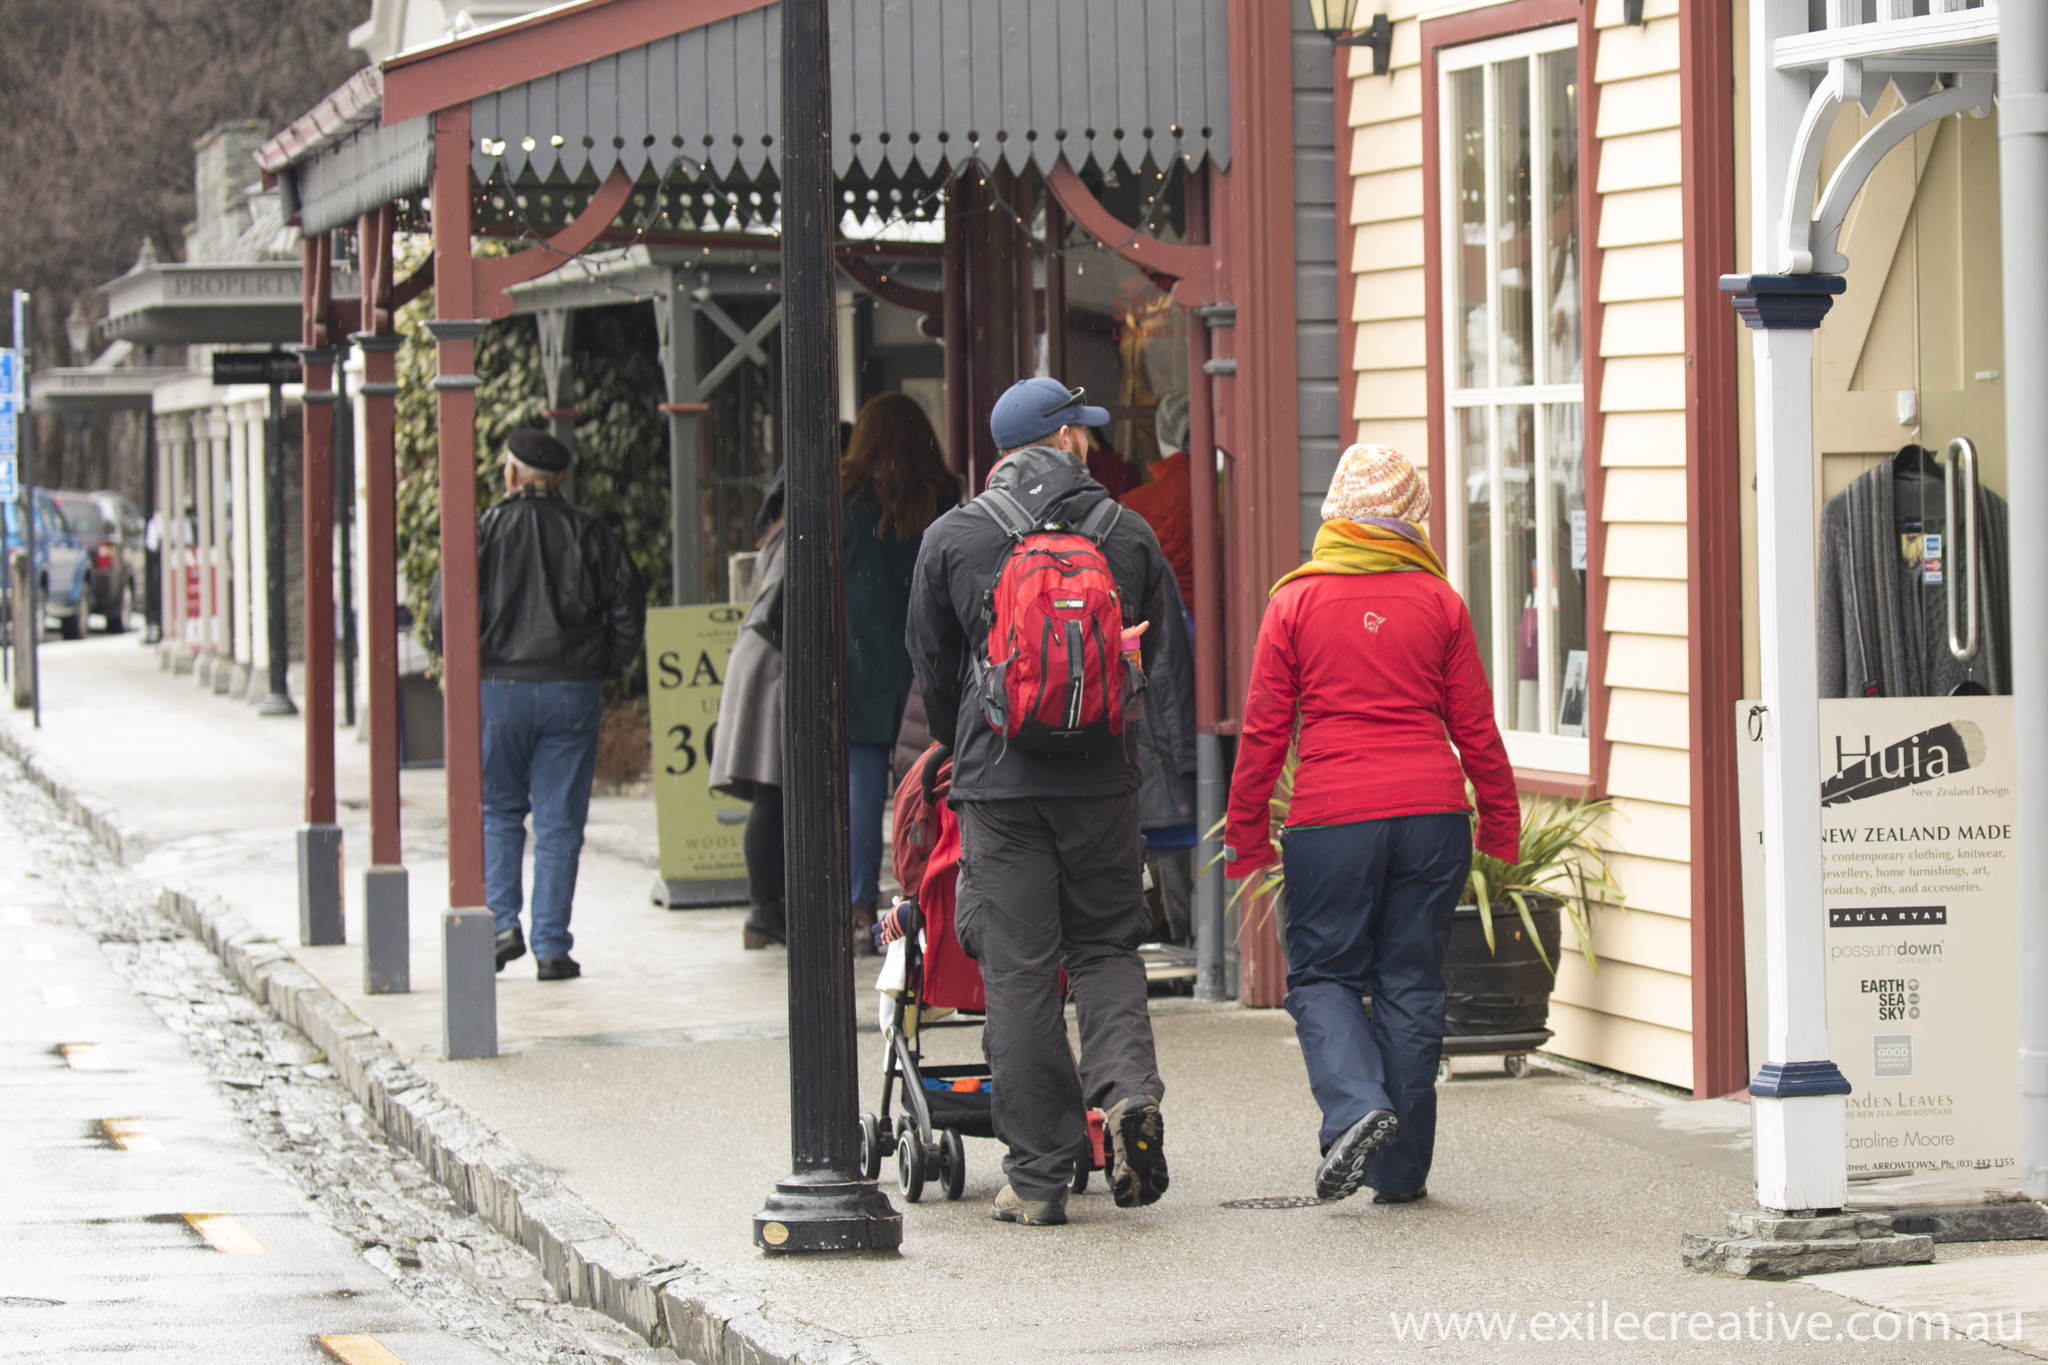 Walking the streets of historic Arrowtown.  Canon 5Dmiii, 100-400L II IS @ 100mm, ISO800, f/5.6, 1/320s